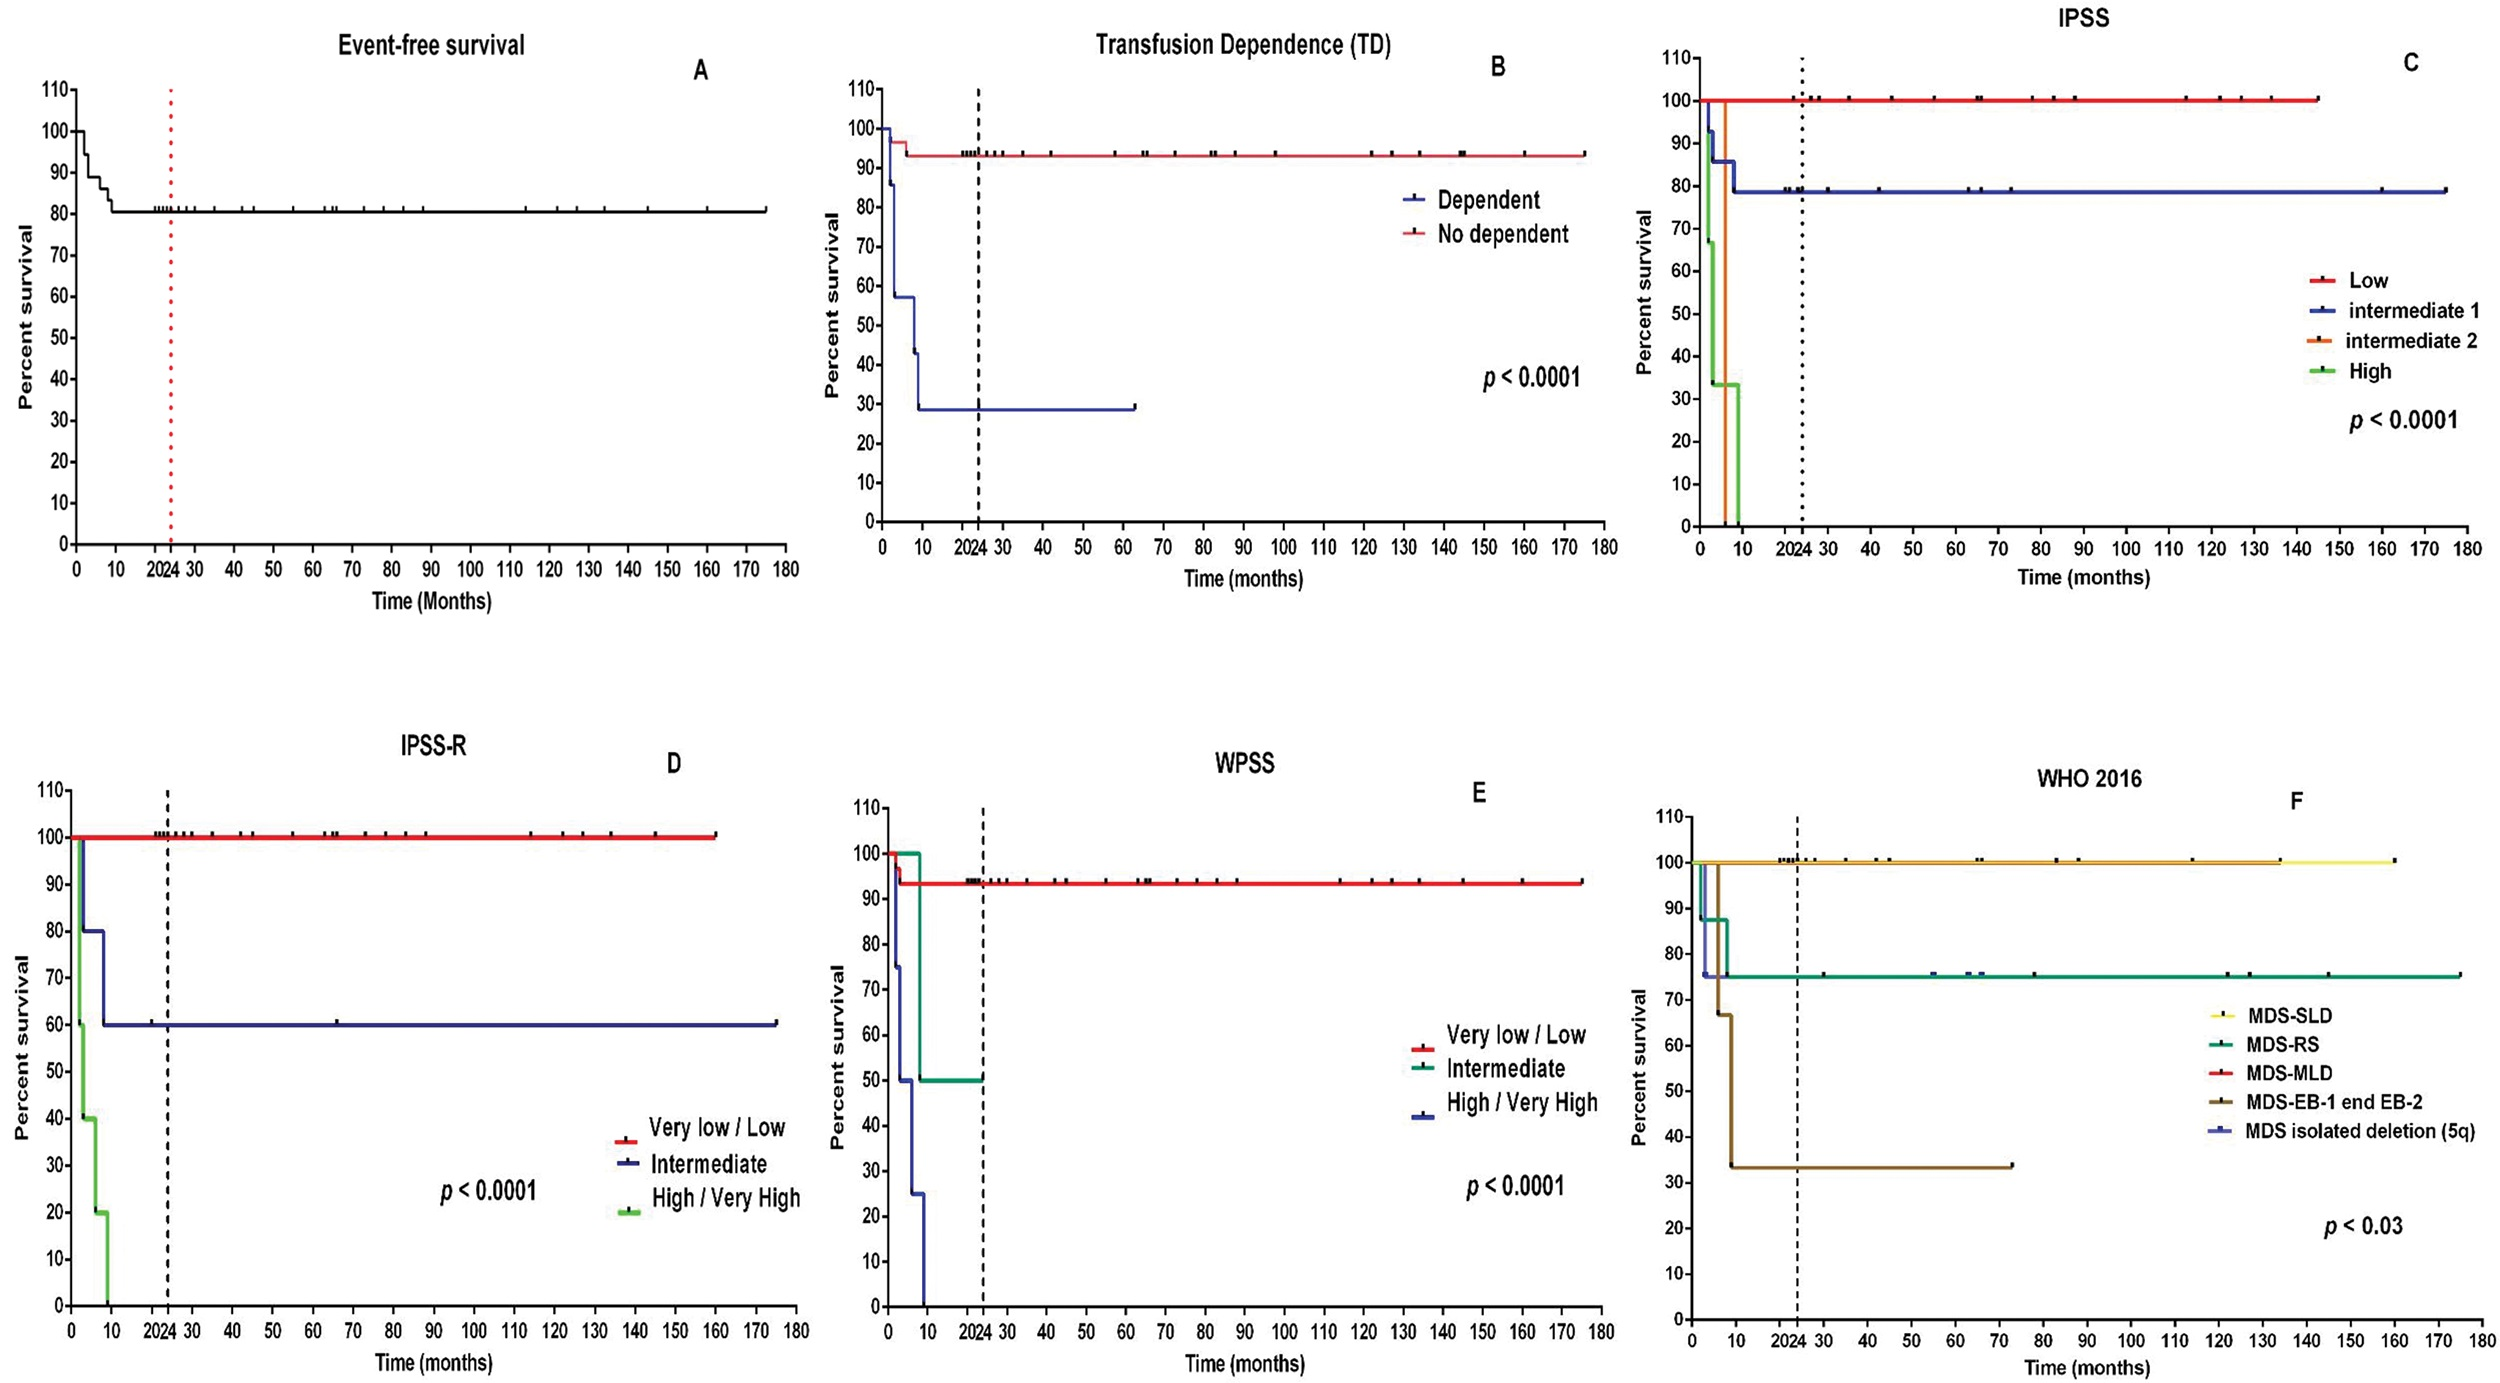 Survival analyses in the study population. (A) Event-free survival of the EPO alfa treated population. (B) Influence of transfusion dependence on event-free survival. (C-F) Influence of risk stratification on event-free survival.